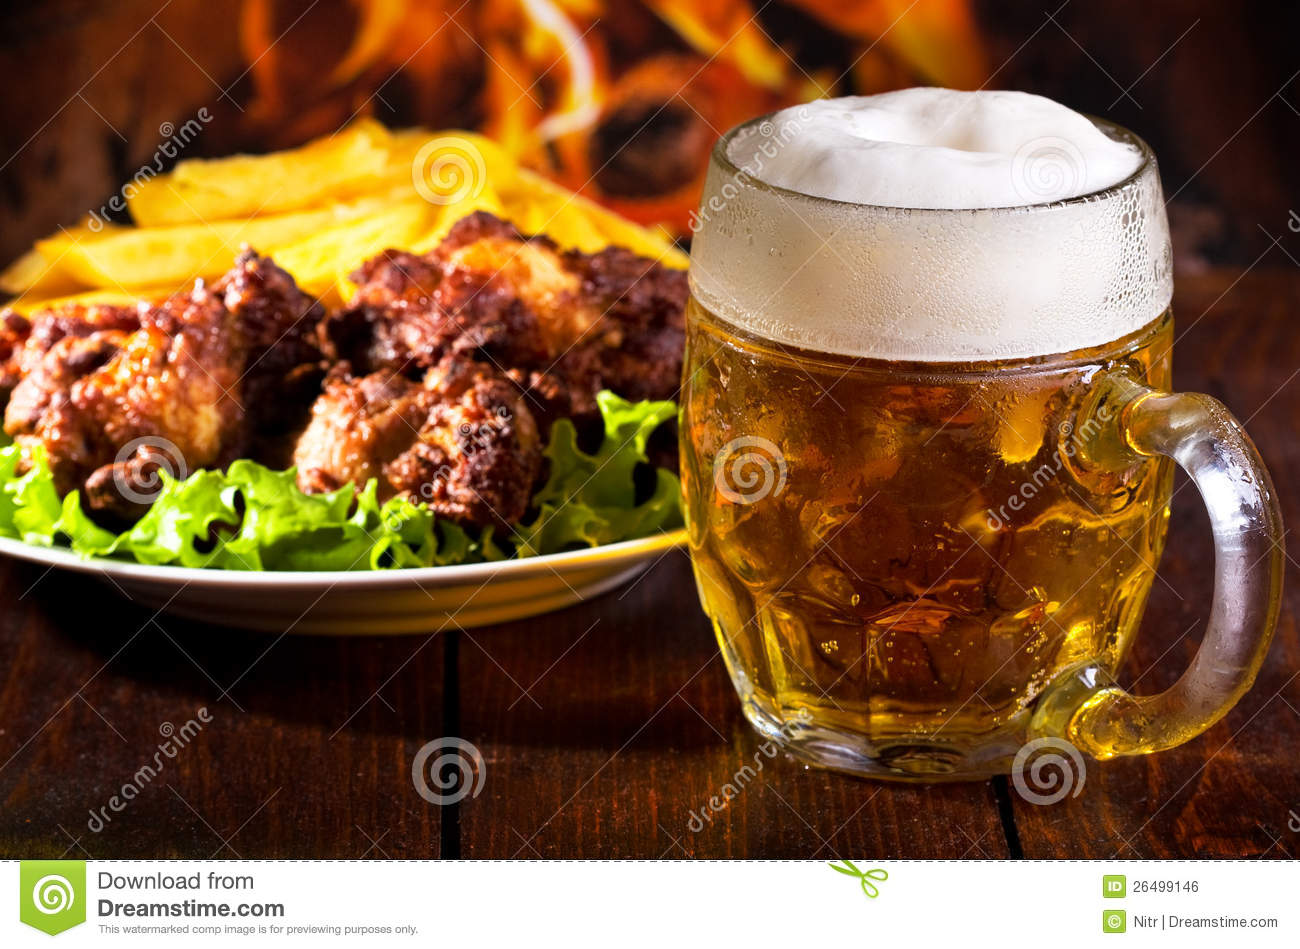 Chicken and beer - photo#5